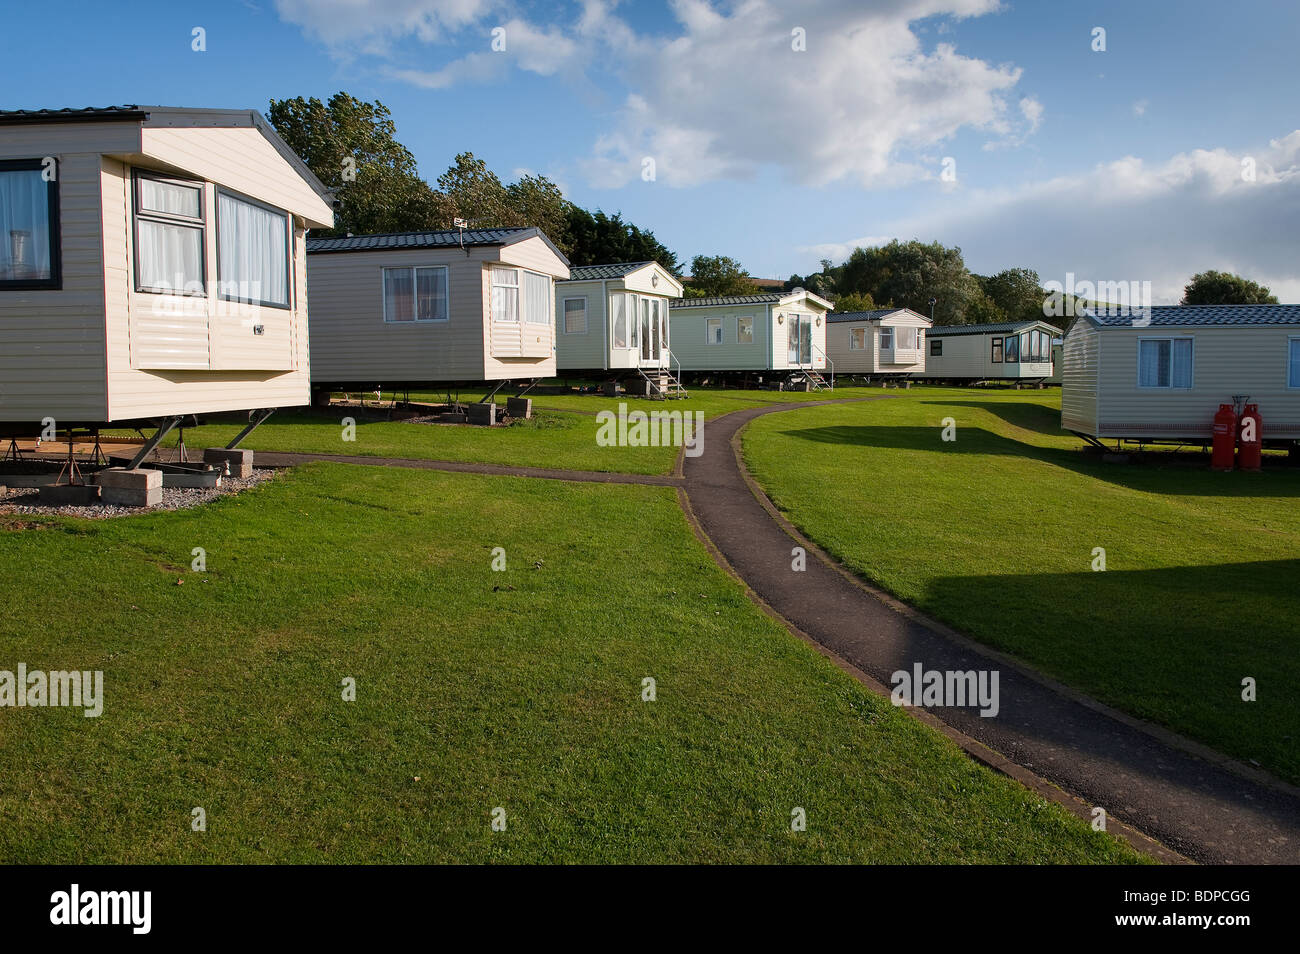 Caravan Park Holiday Home site at Doniford, Somerset with Calor Gas Cylinders Stock Photo